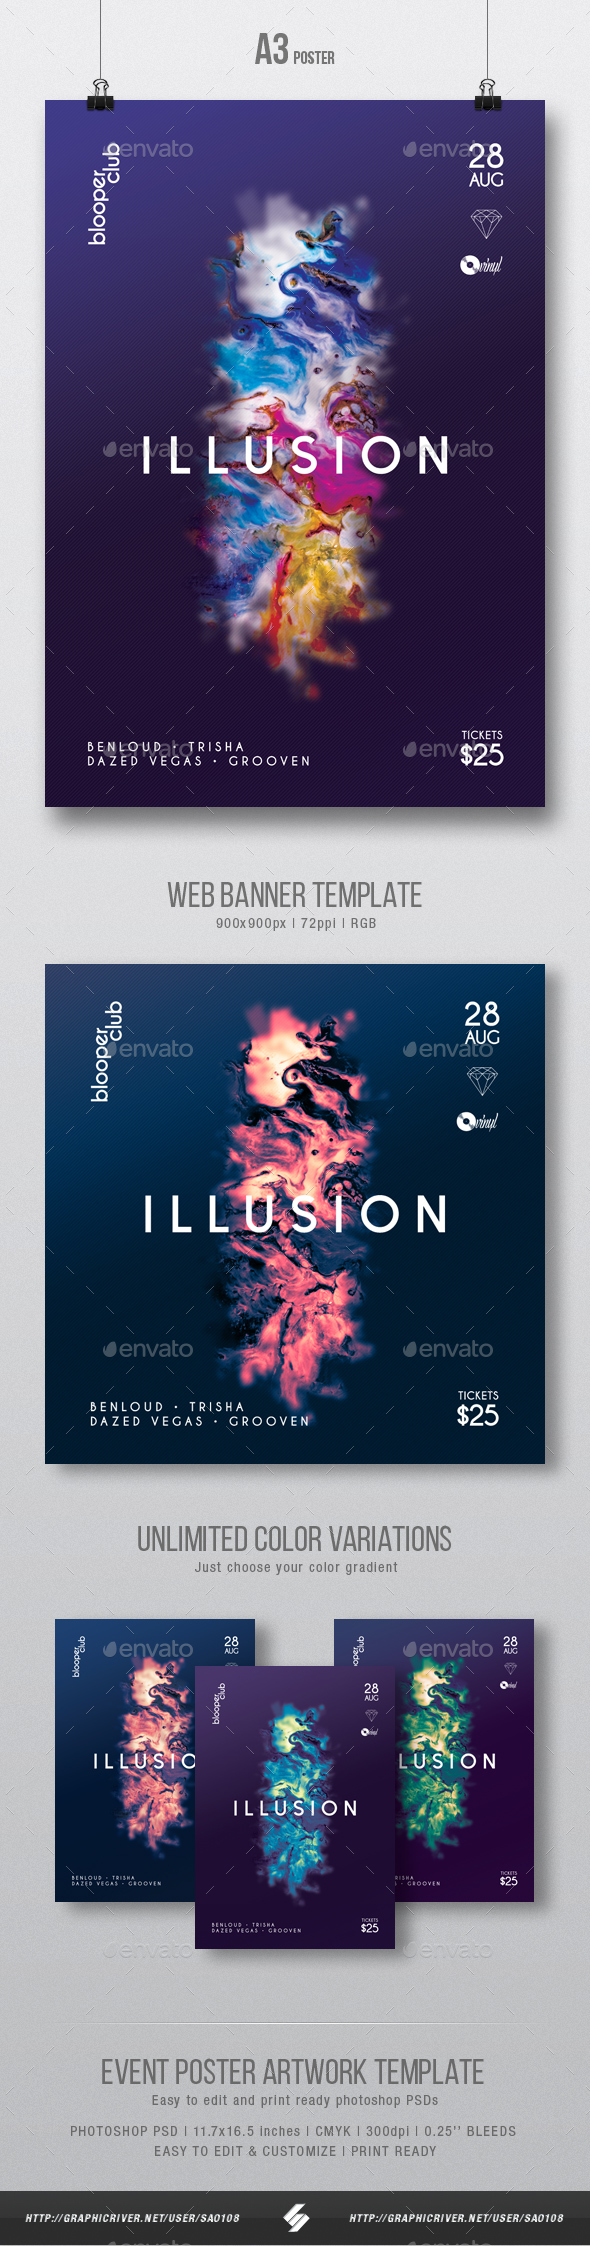 GraphicRiver Illusion Minimal Party Flyer Poster Artwork Template A3 20567273